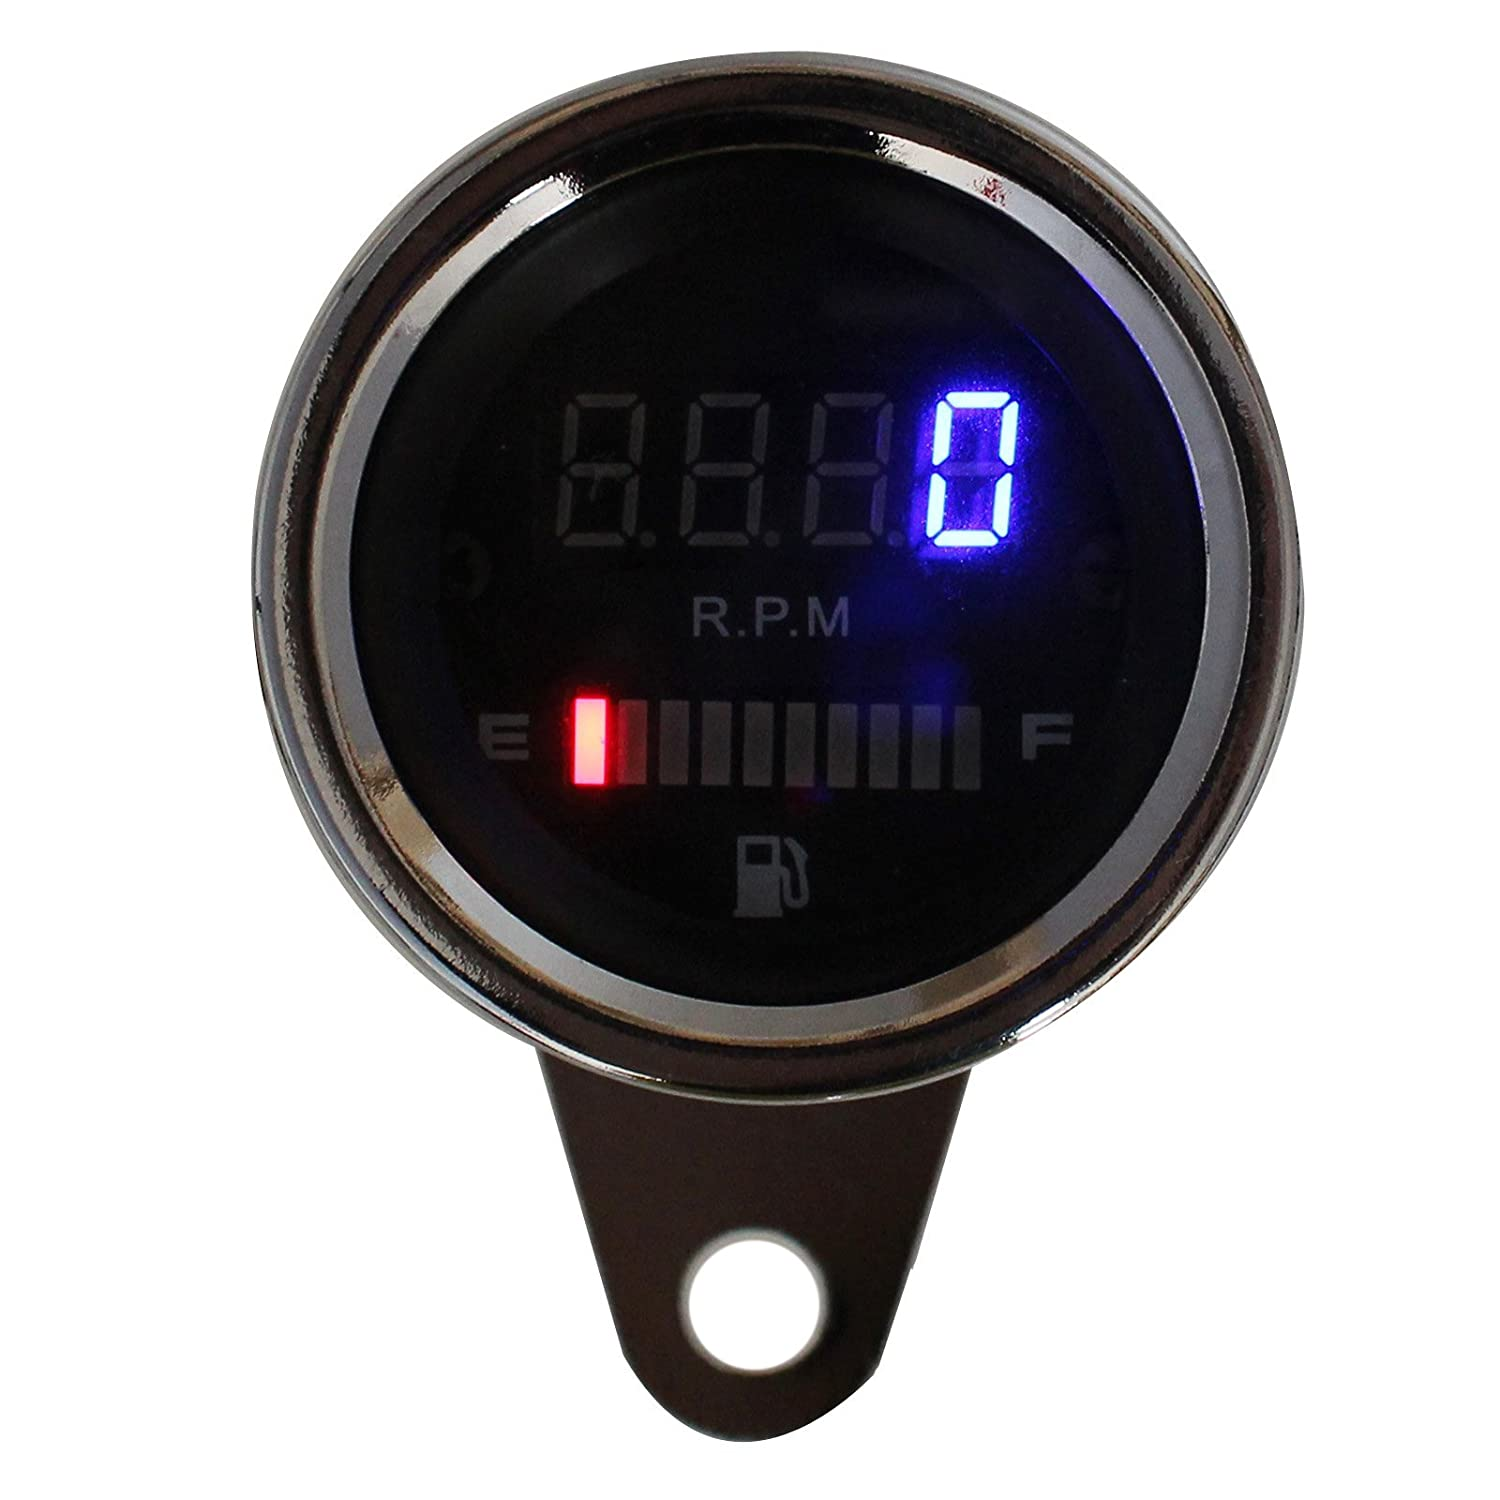 motorcycle odometer digital lcd speedometer motor tachometer 12v 2 in 1 motorcycle led digital speedometer tachometer speed fuel lever gauge